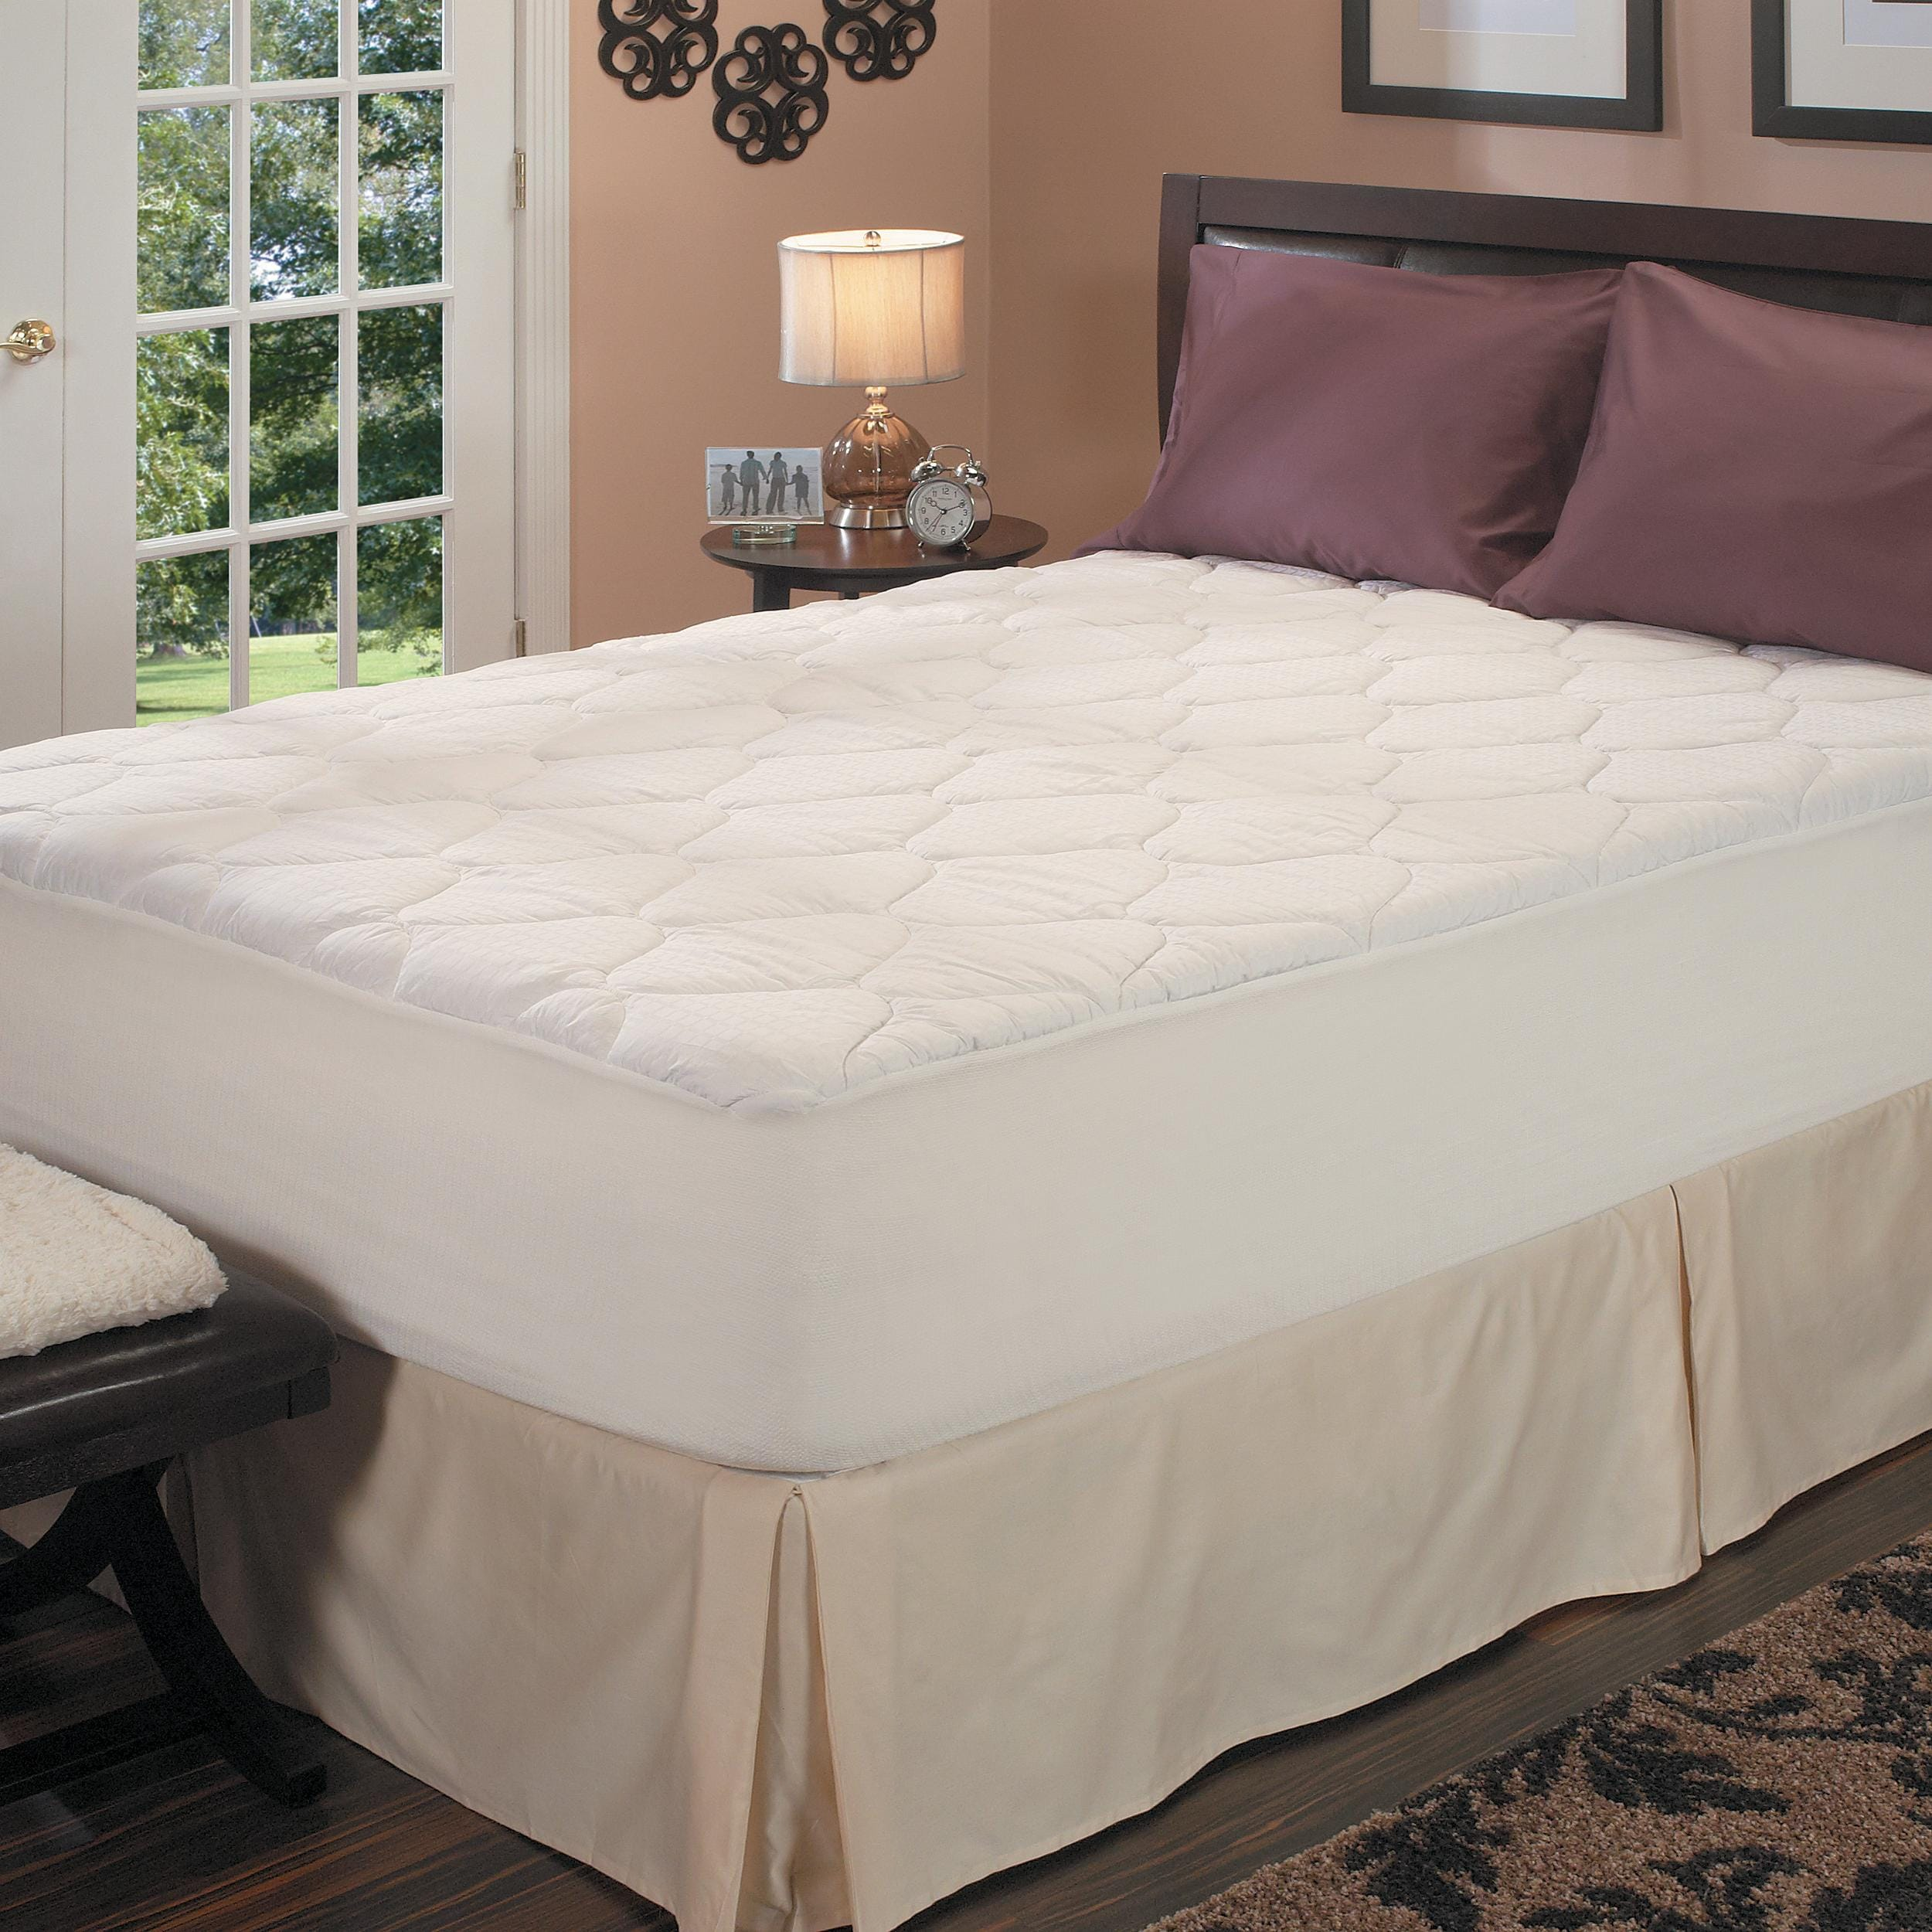 Famous Maker Stain Resistant 305 Thread Count Twin/ Full-size Plush Mattress Pad